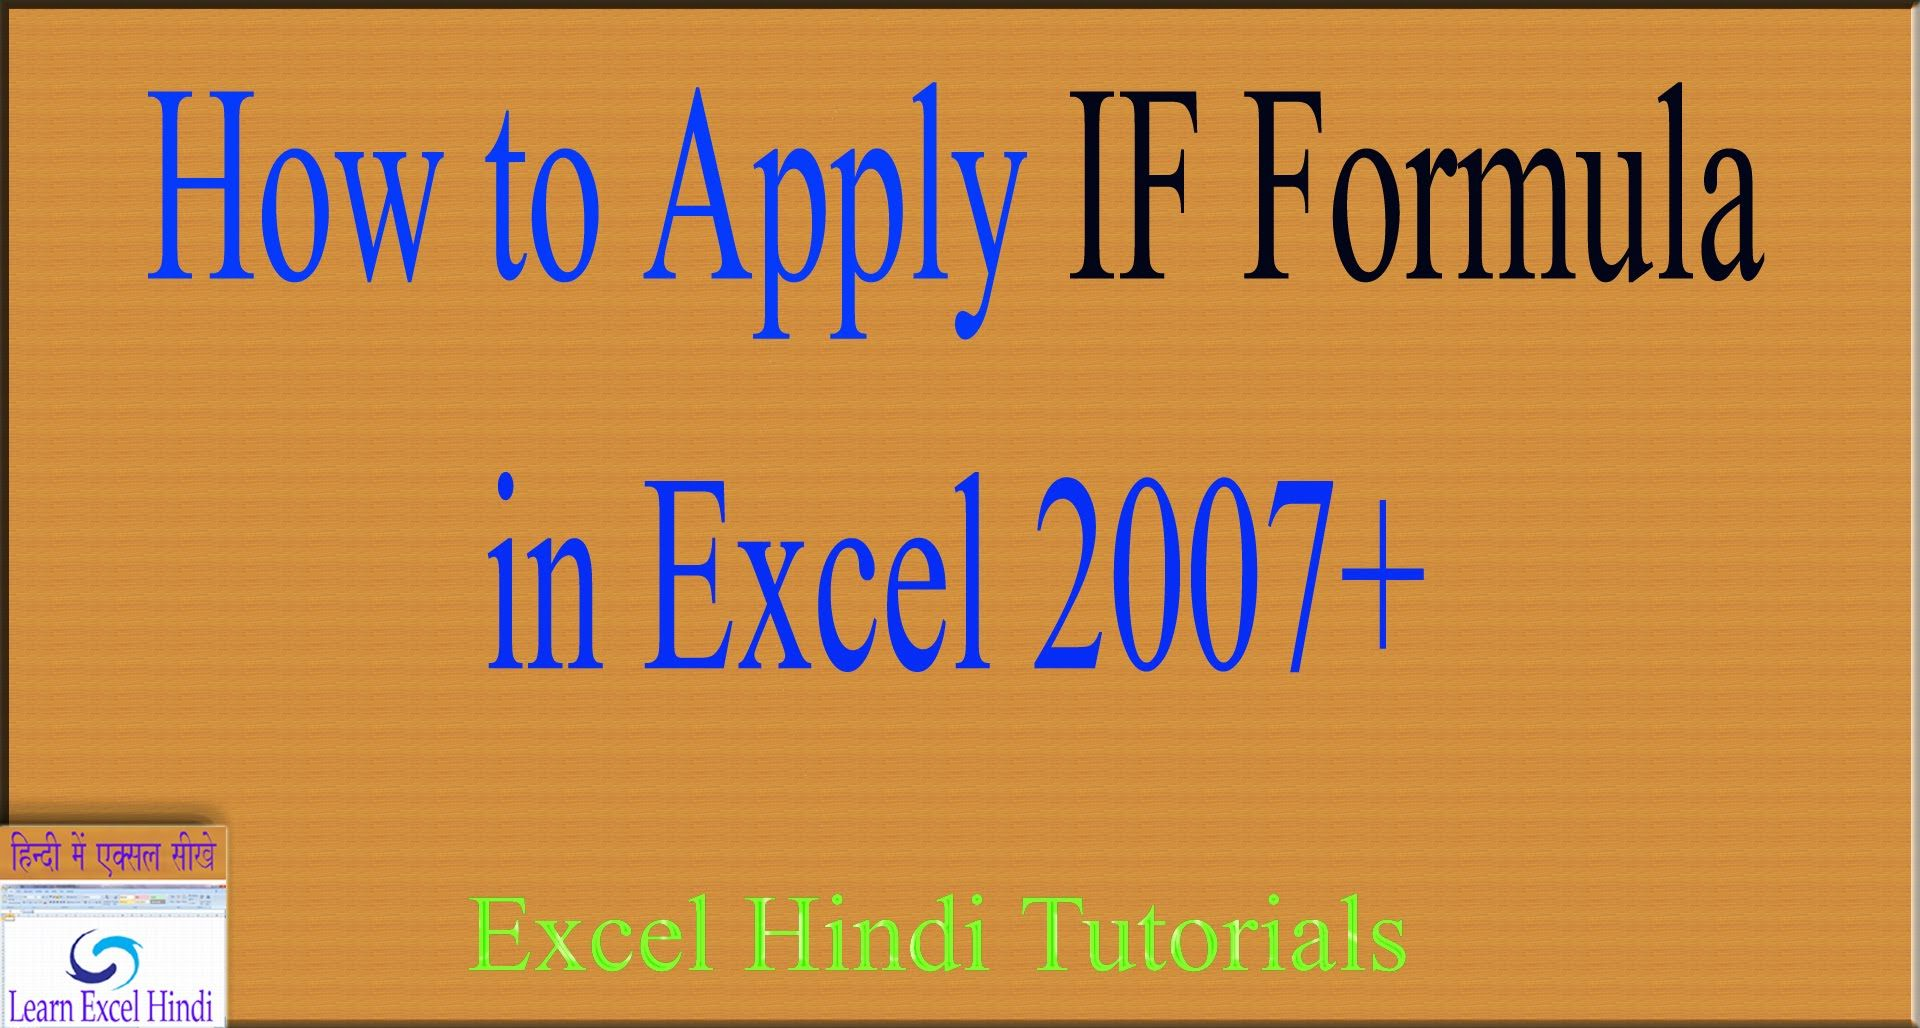 Learn Excel in Hindi by Ajay Sharma Excel tutorials